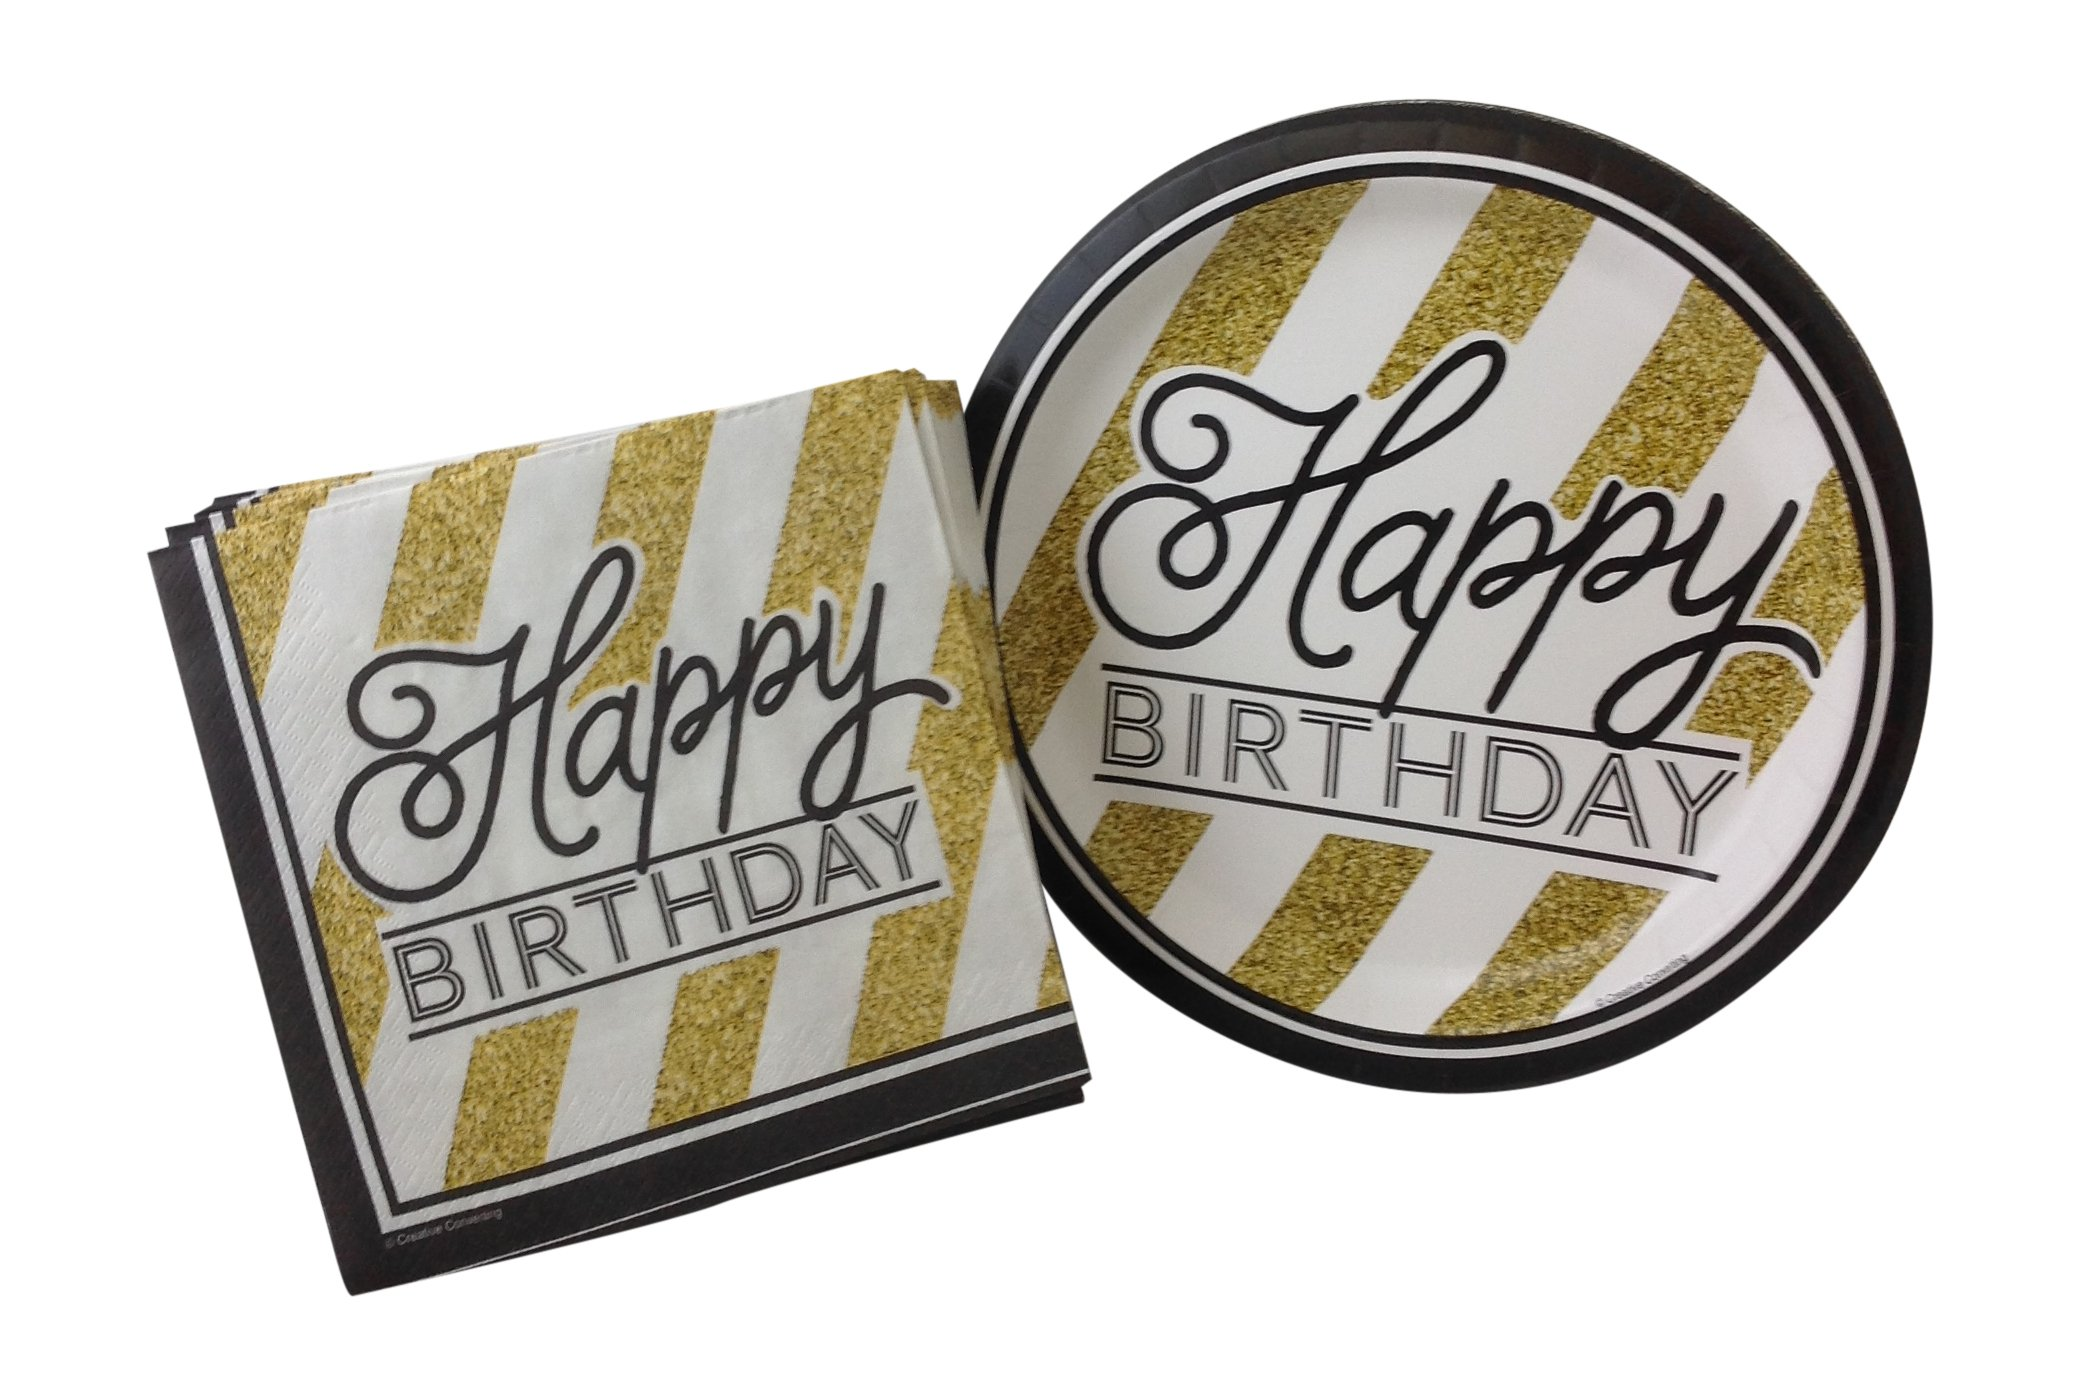 Black and Gold Happy Birthday Party Bundle with Paper Plates and Napkins for 16 Guests